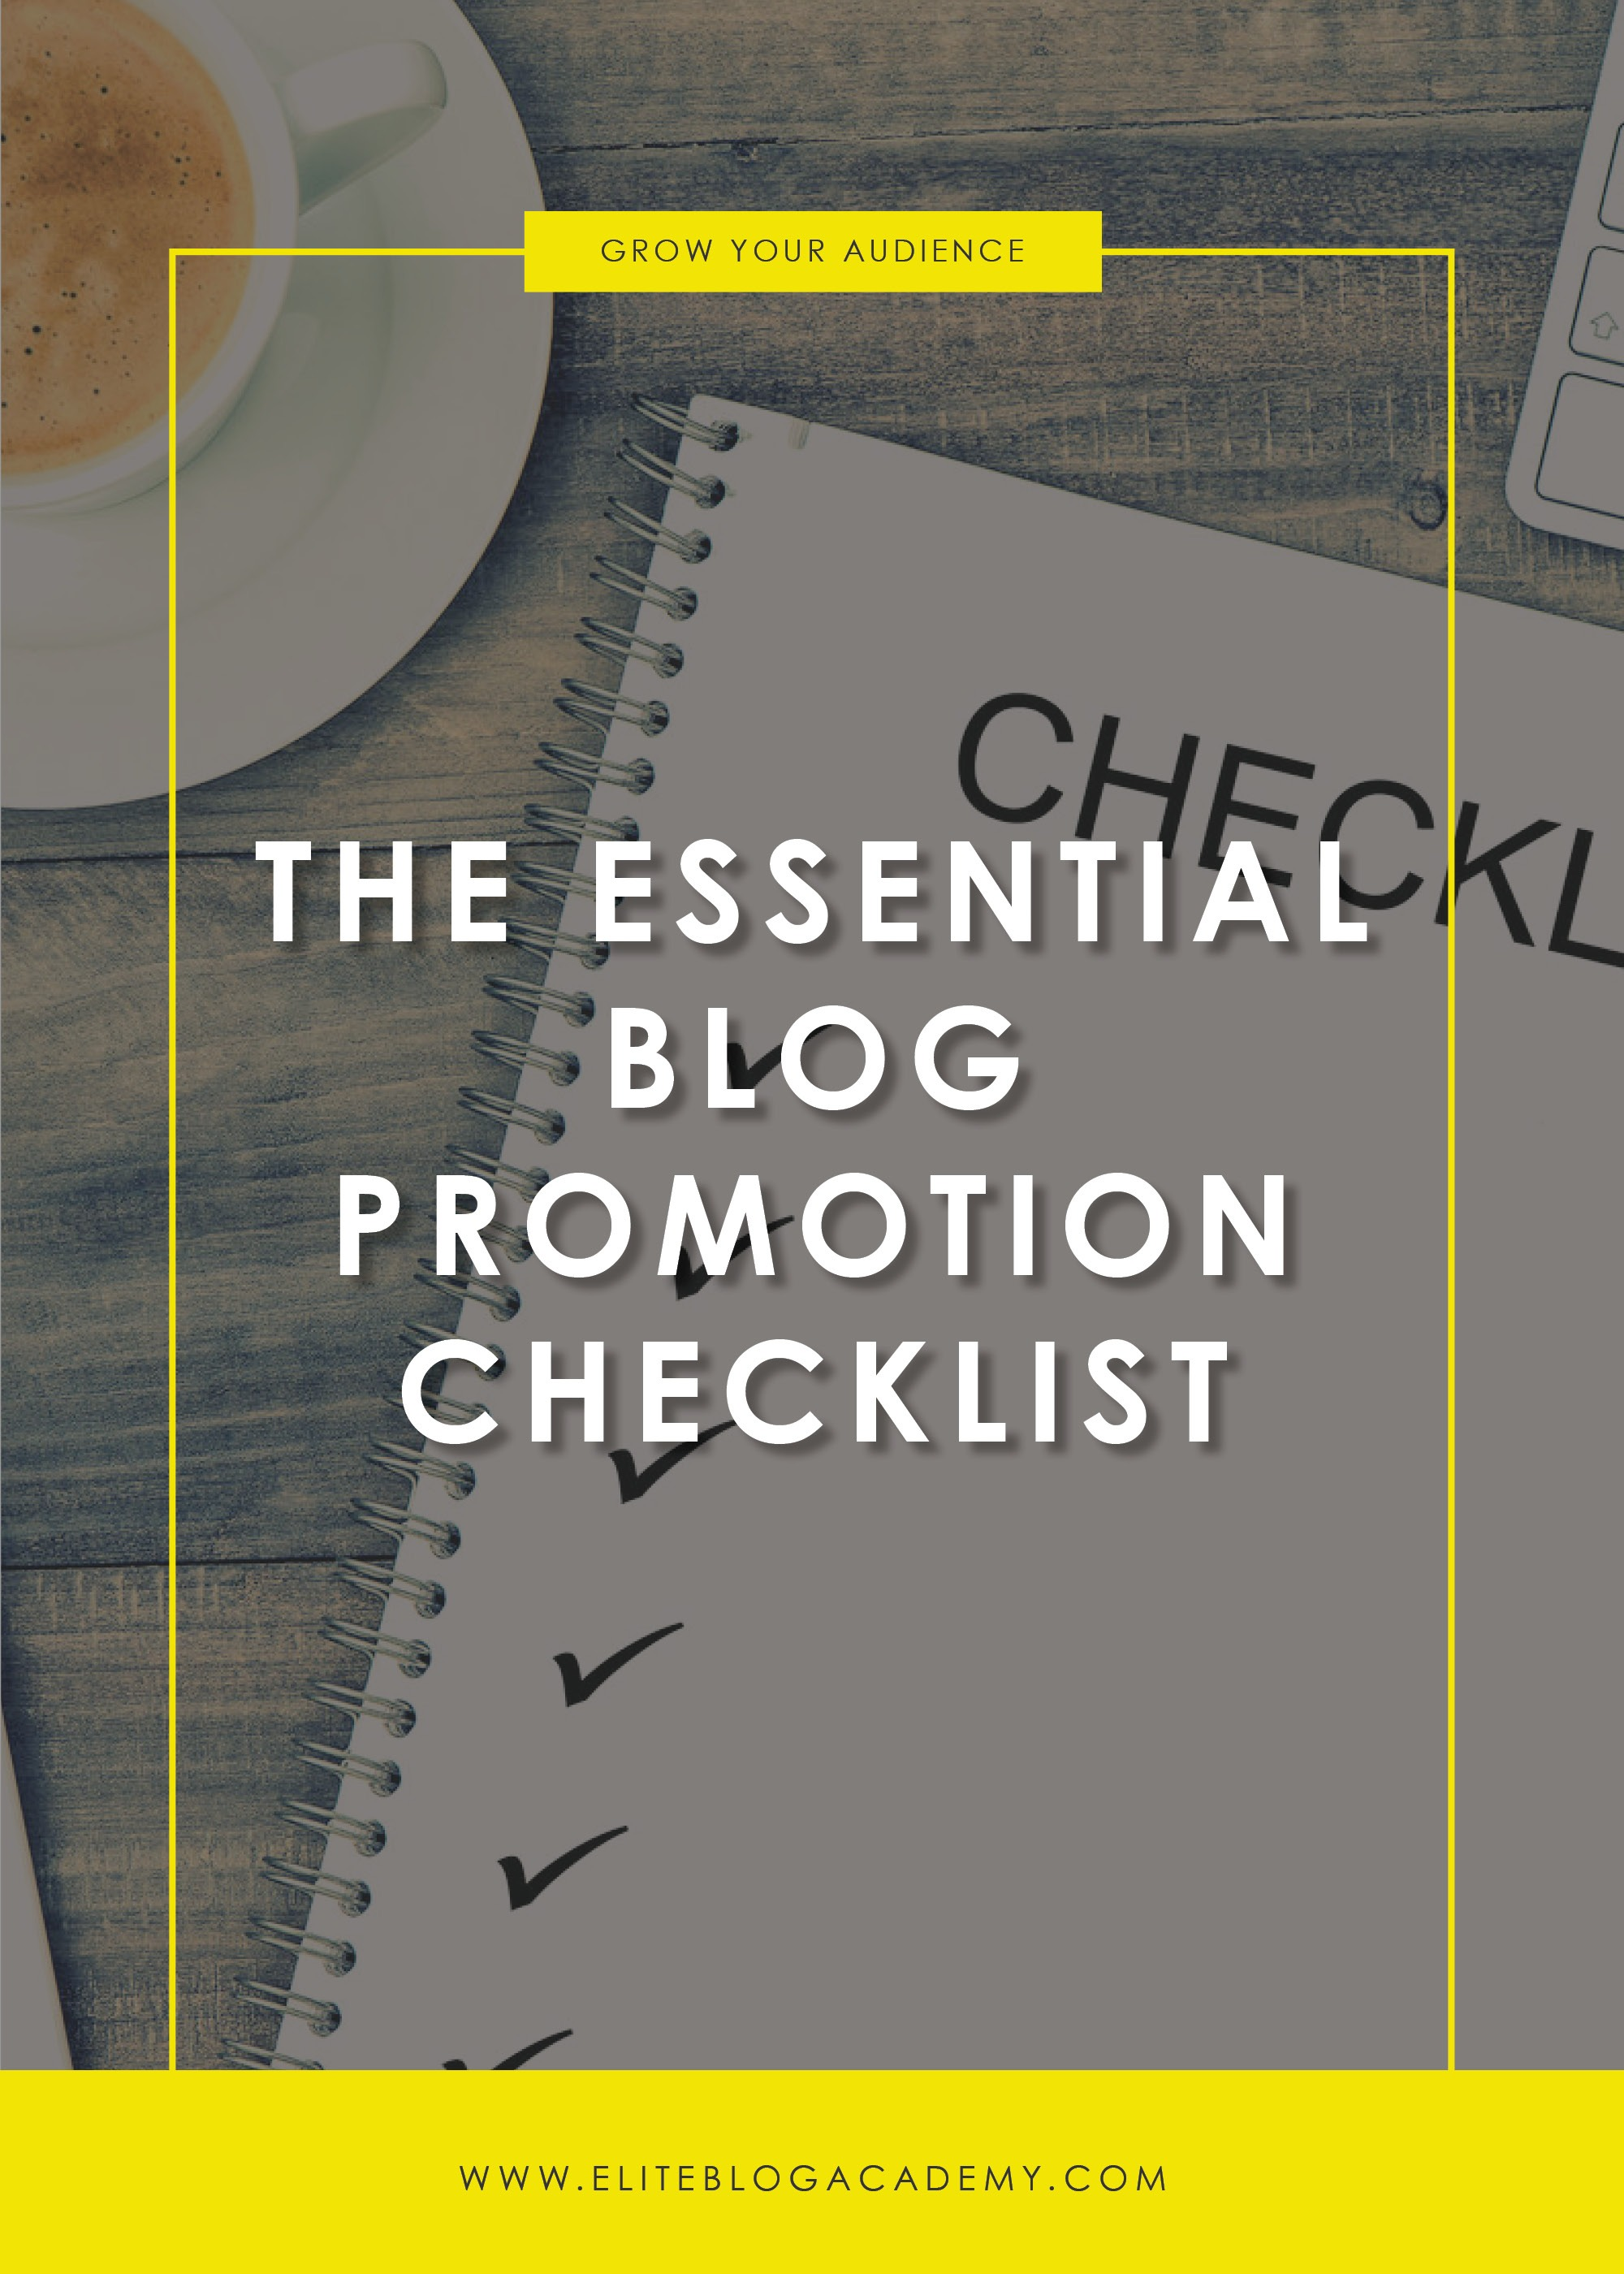 Need a consistent way to promote your blog posts? Use this essential blog promotion checklist to make sure your posts get the attention they deserve! #eliteblogacademy #socialmedia #growyourblog